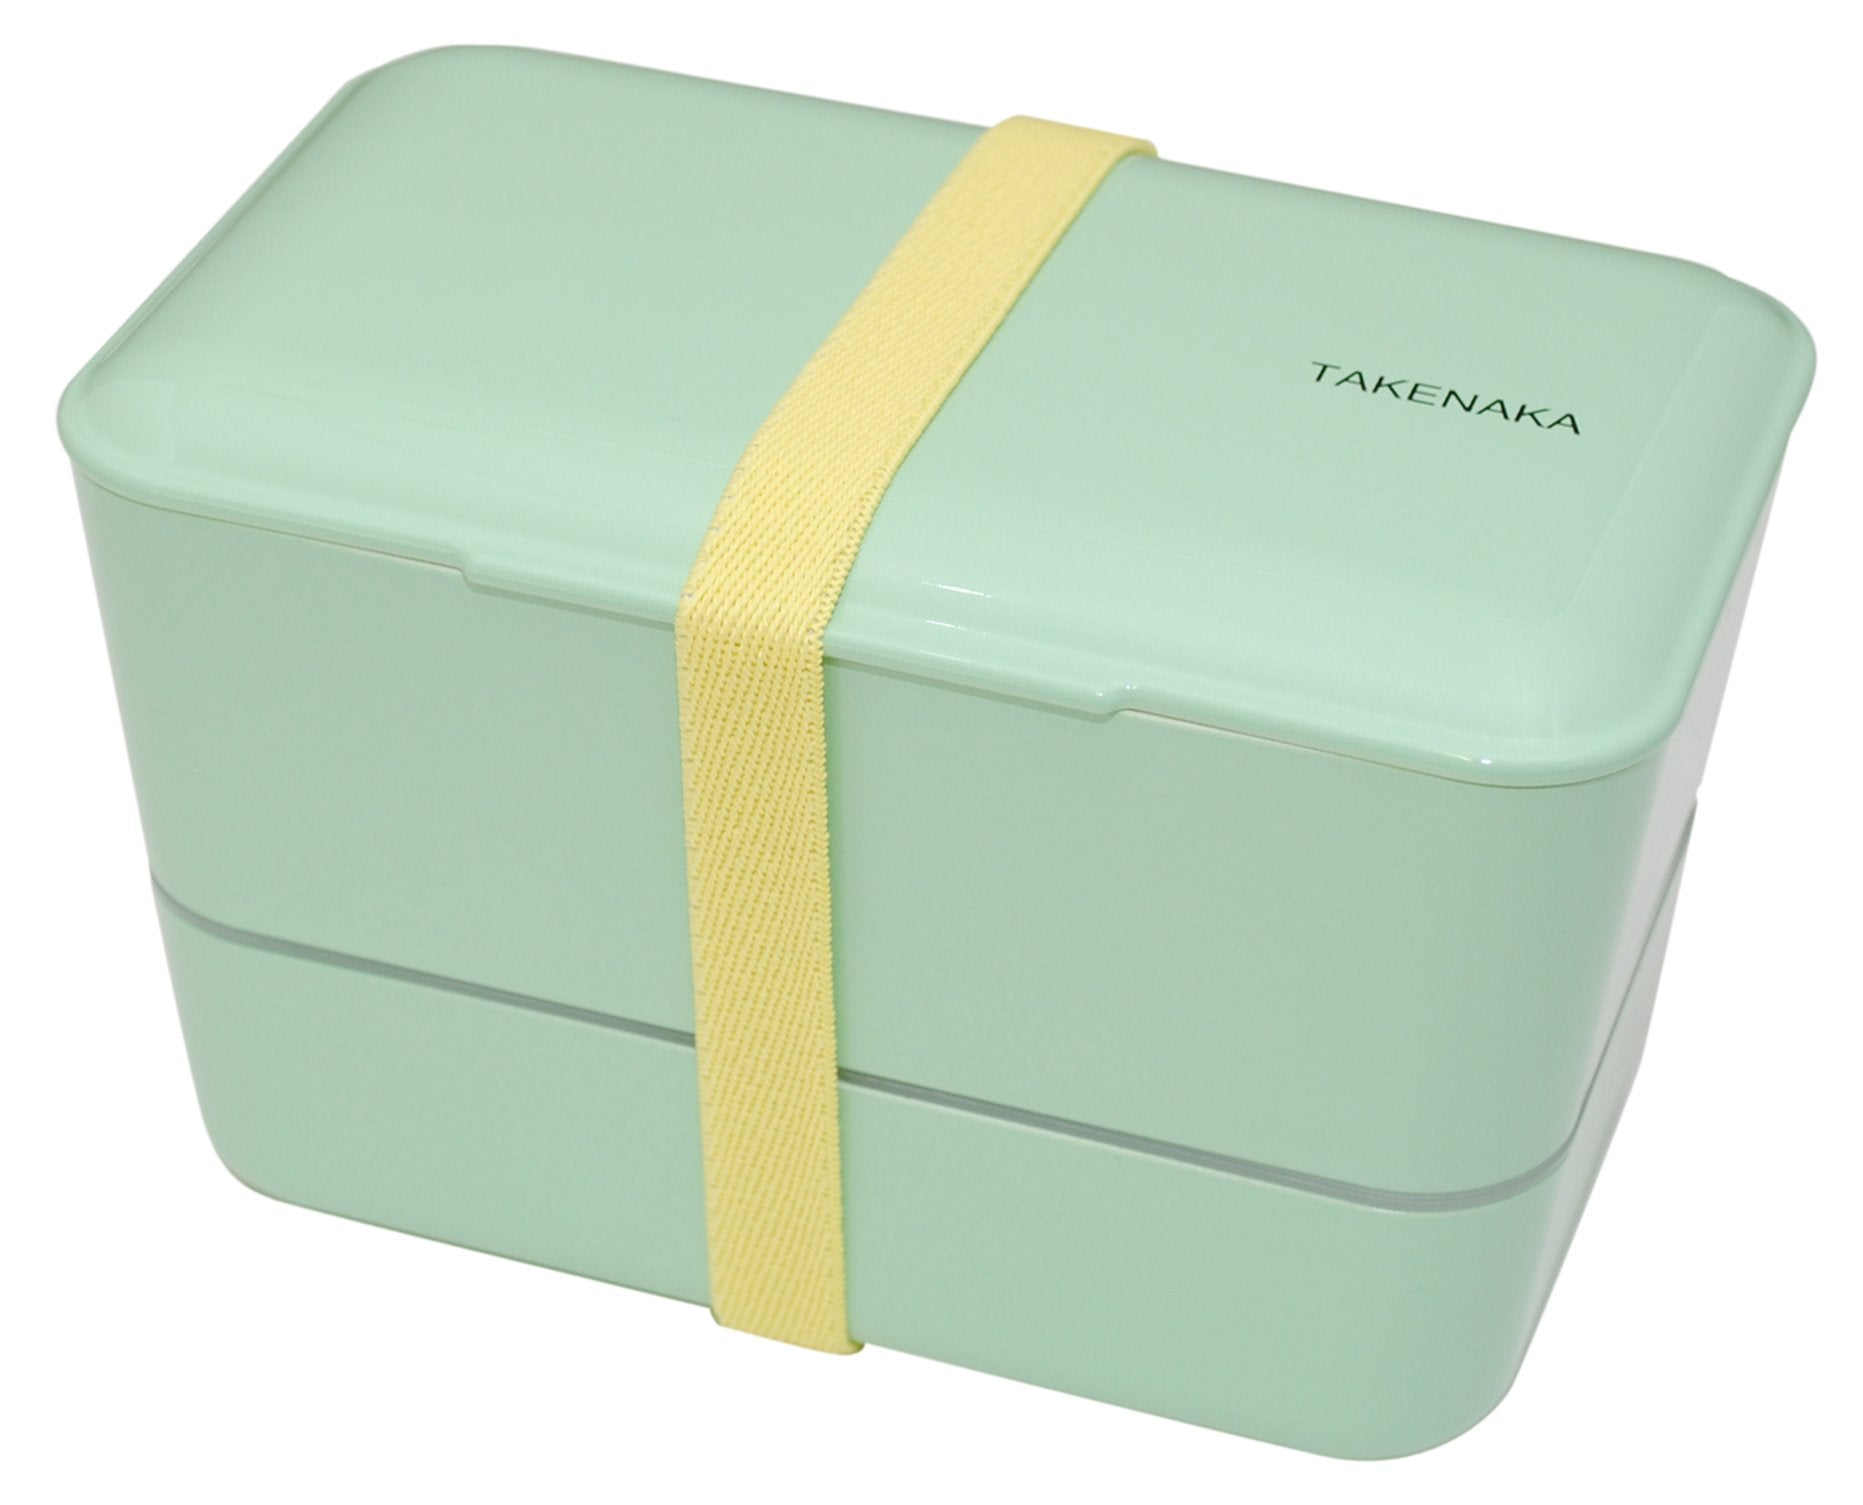 Expanded Double Bento Box | Peppermint by Takenaka - Bento&co Japanese Bento Lunch Boxes and Kitchenware Specialists